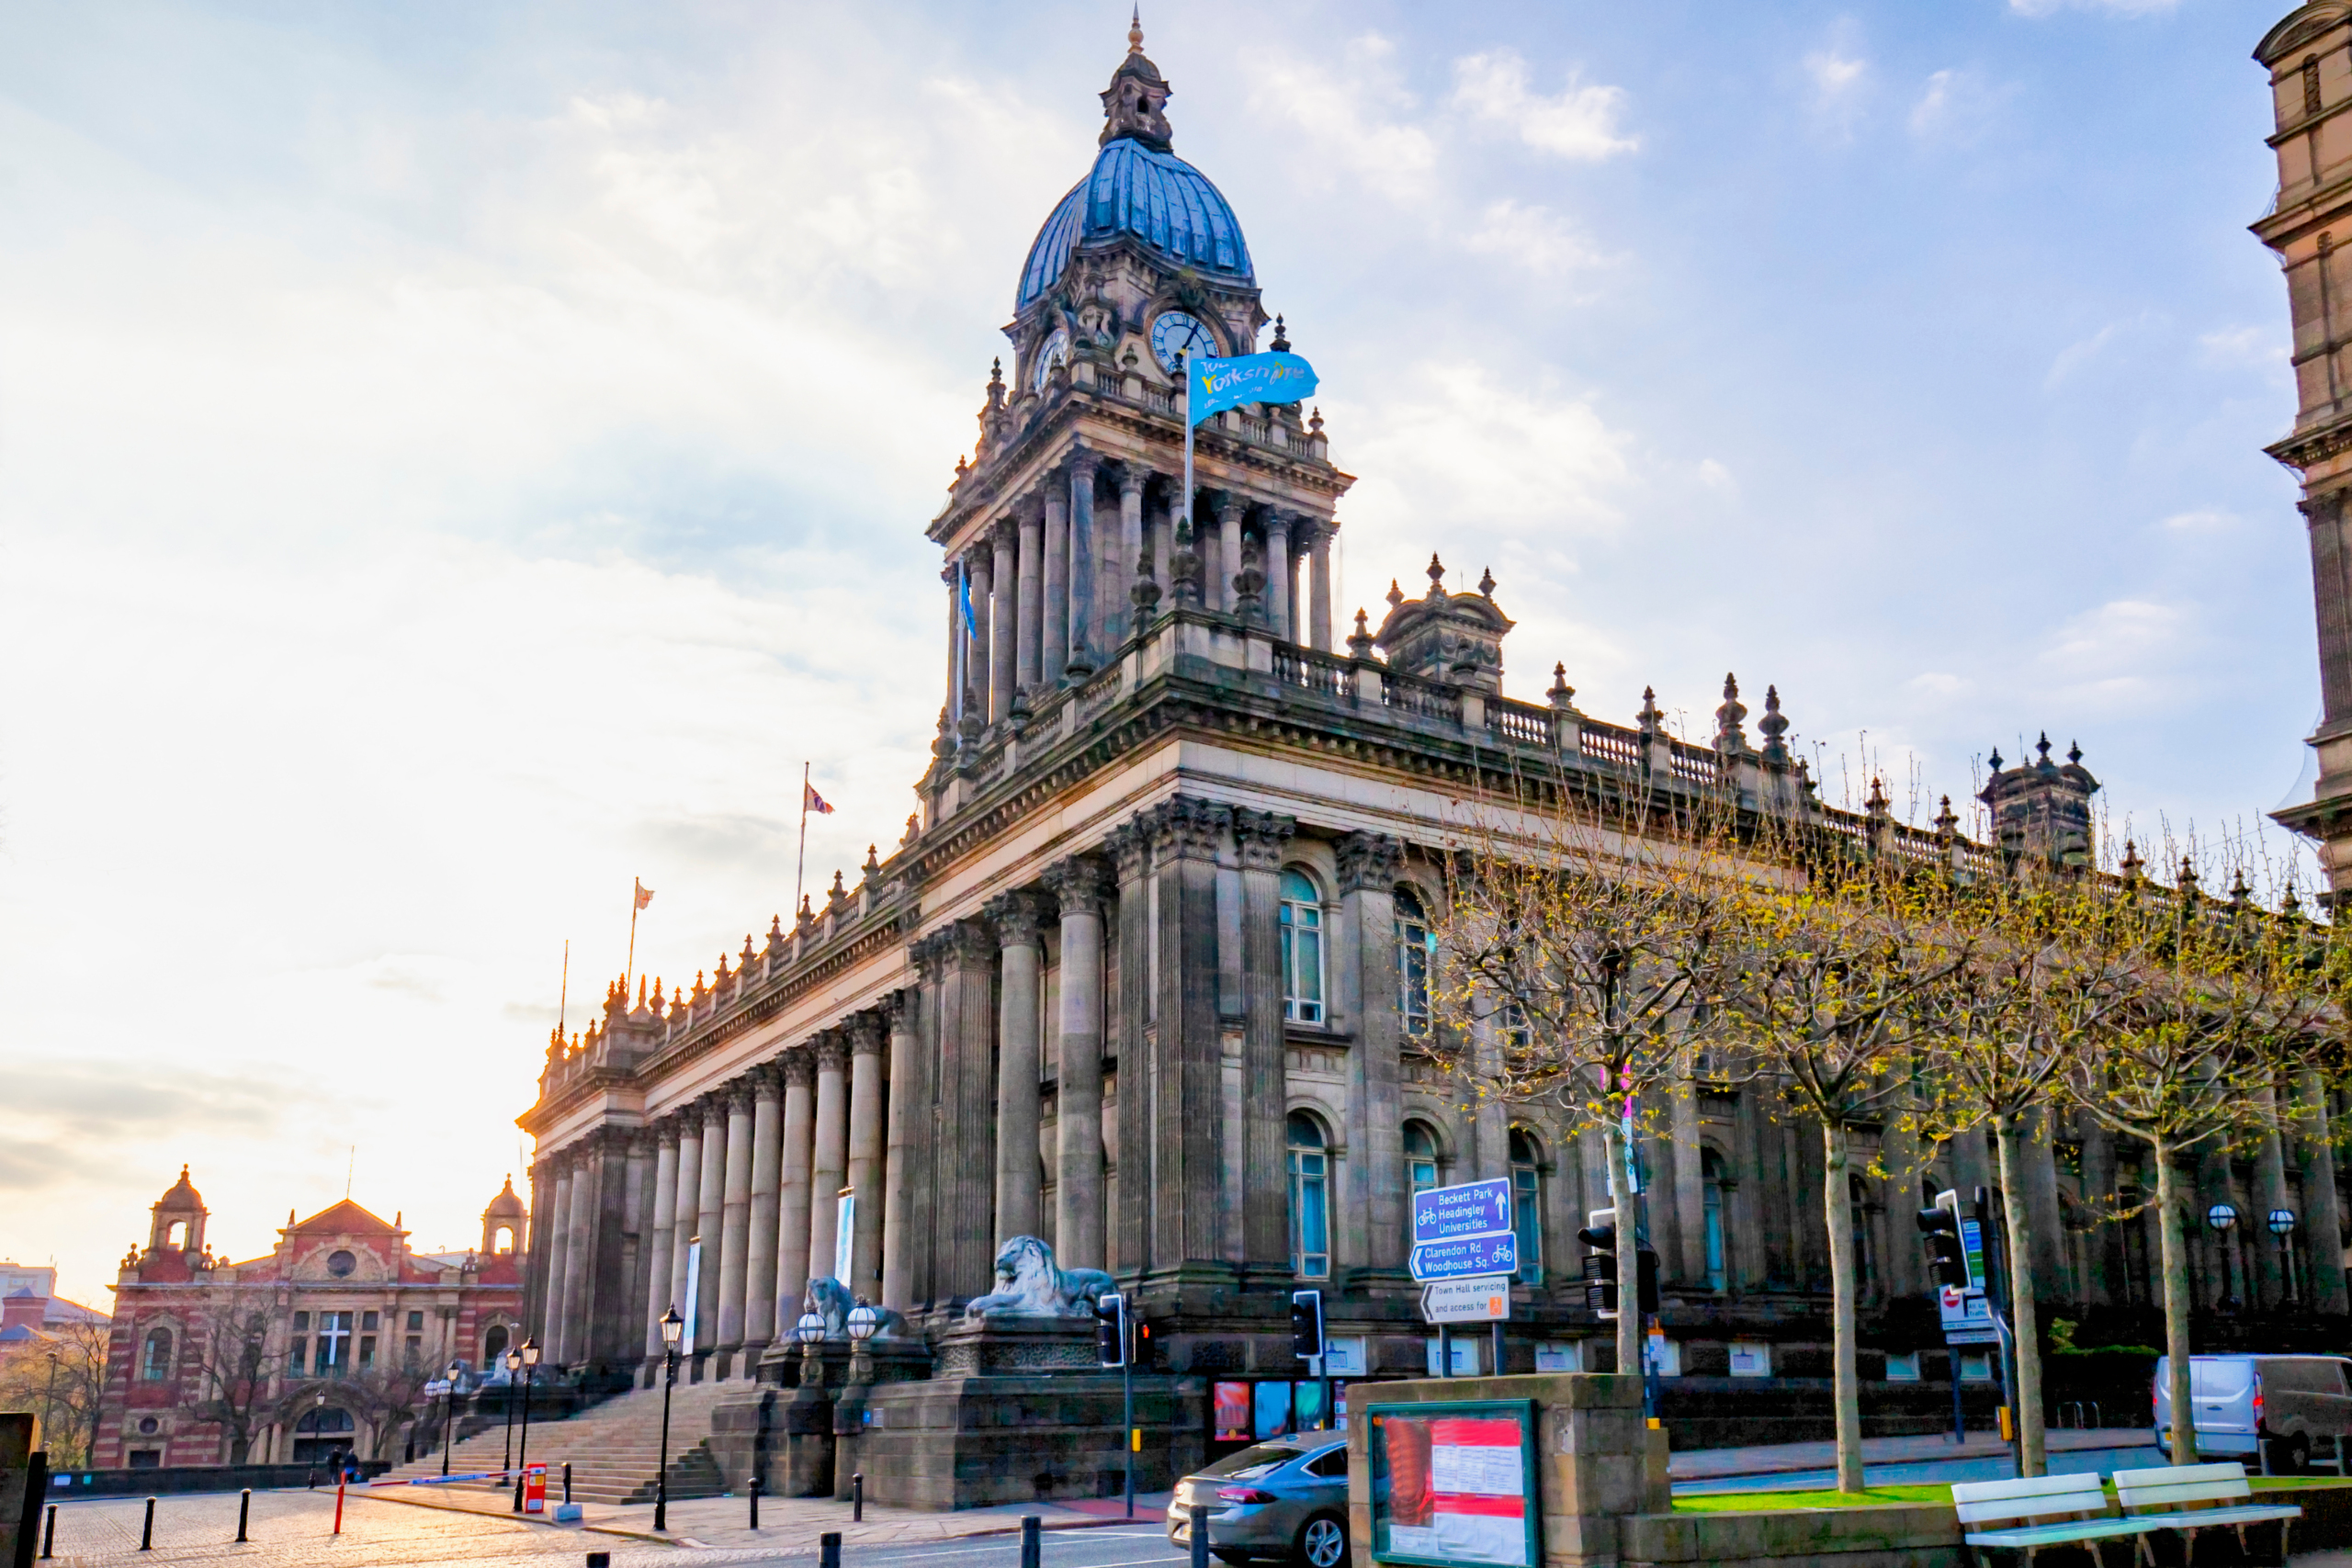 Leeds launches Green Homes Grant Scheme